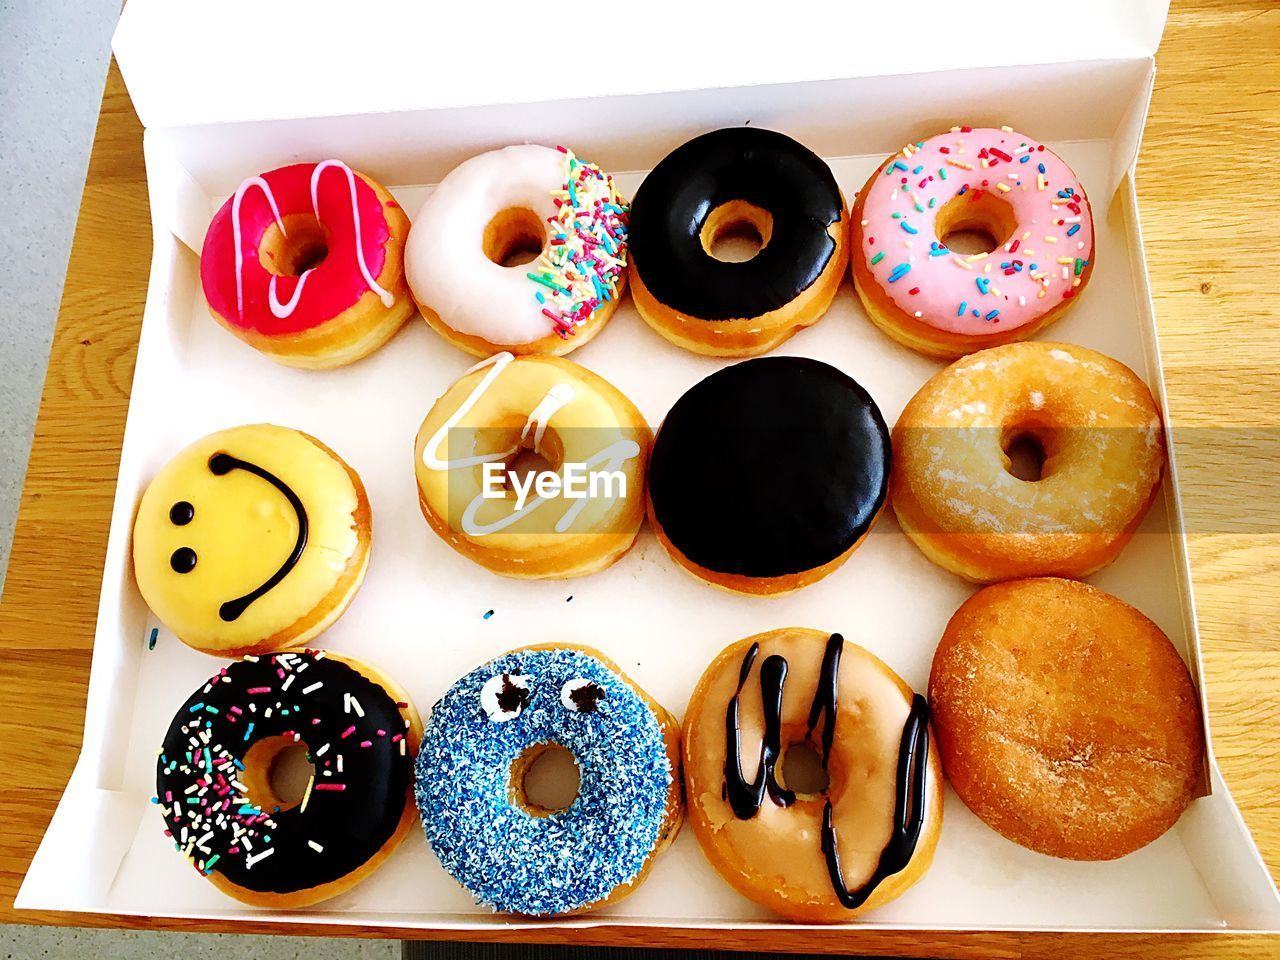 food and drink, food, indulgence, sweet food, temptation, still life, ready-to-eat, dessert, freshness, variation, table, directly above, donut, unhealthy eating, no people, indoors, sprinkles, serving size, plate, high angle view, multi colored, choice, close-up, day